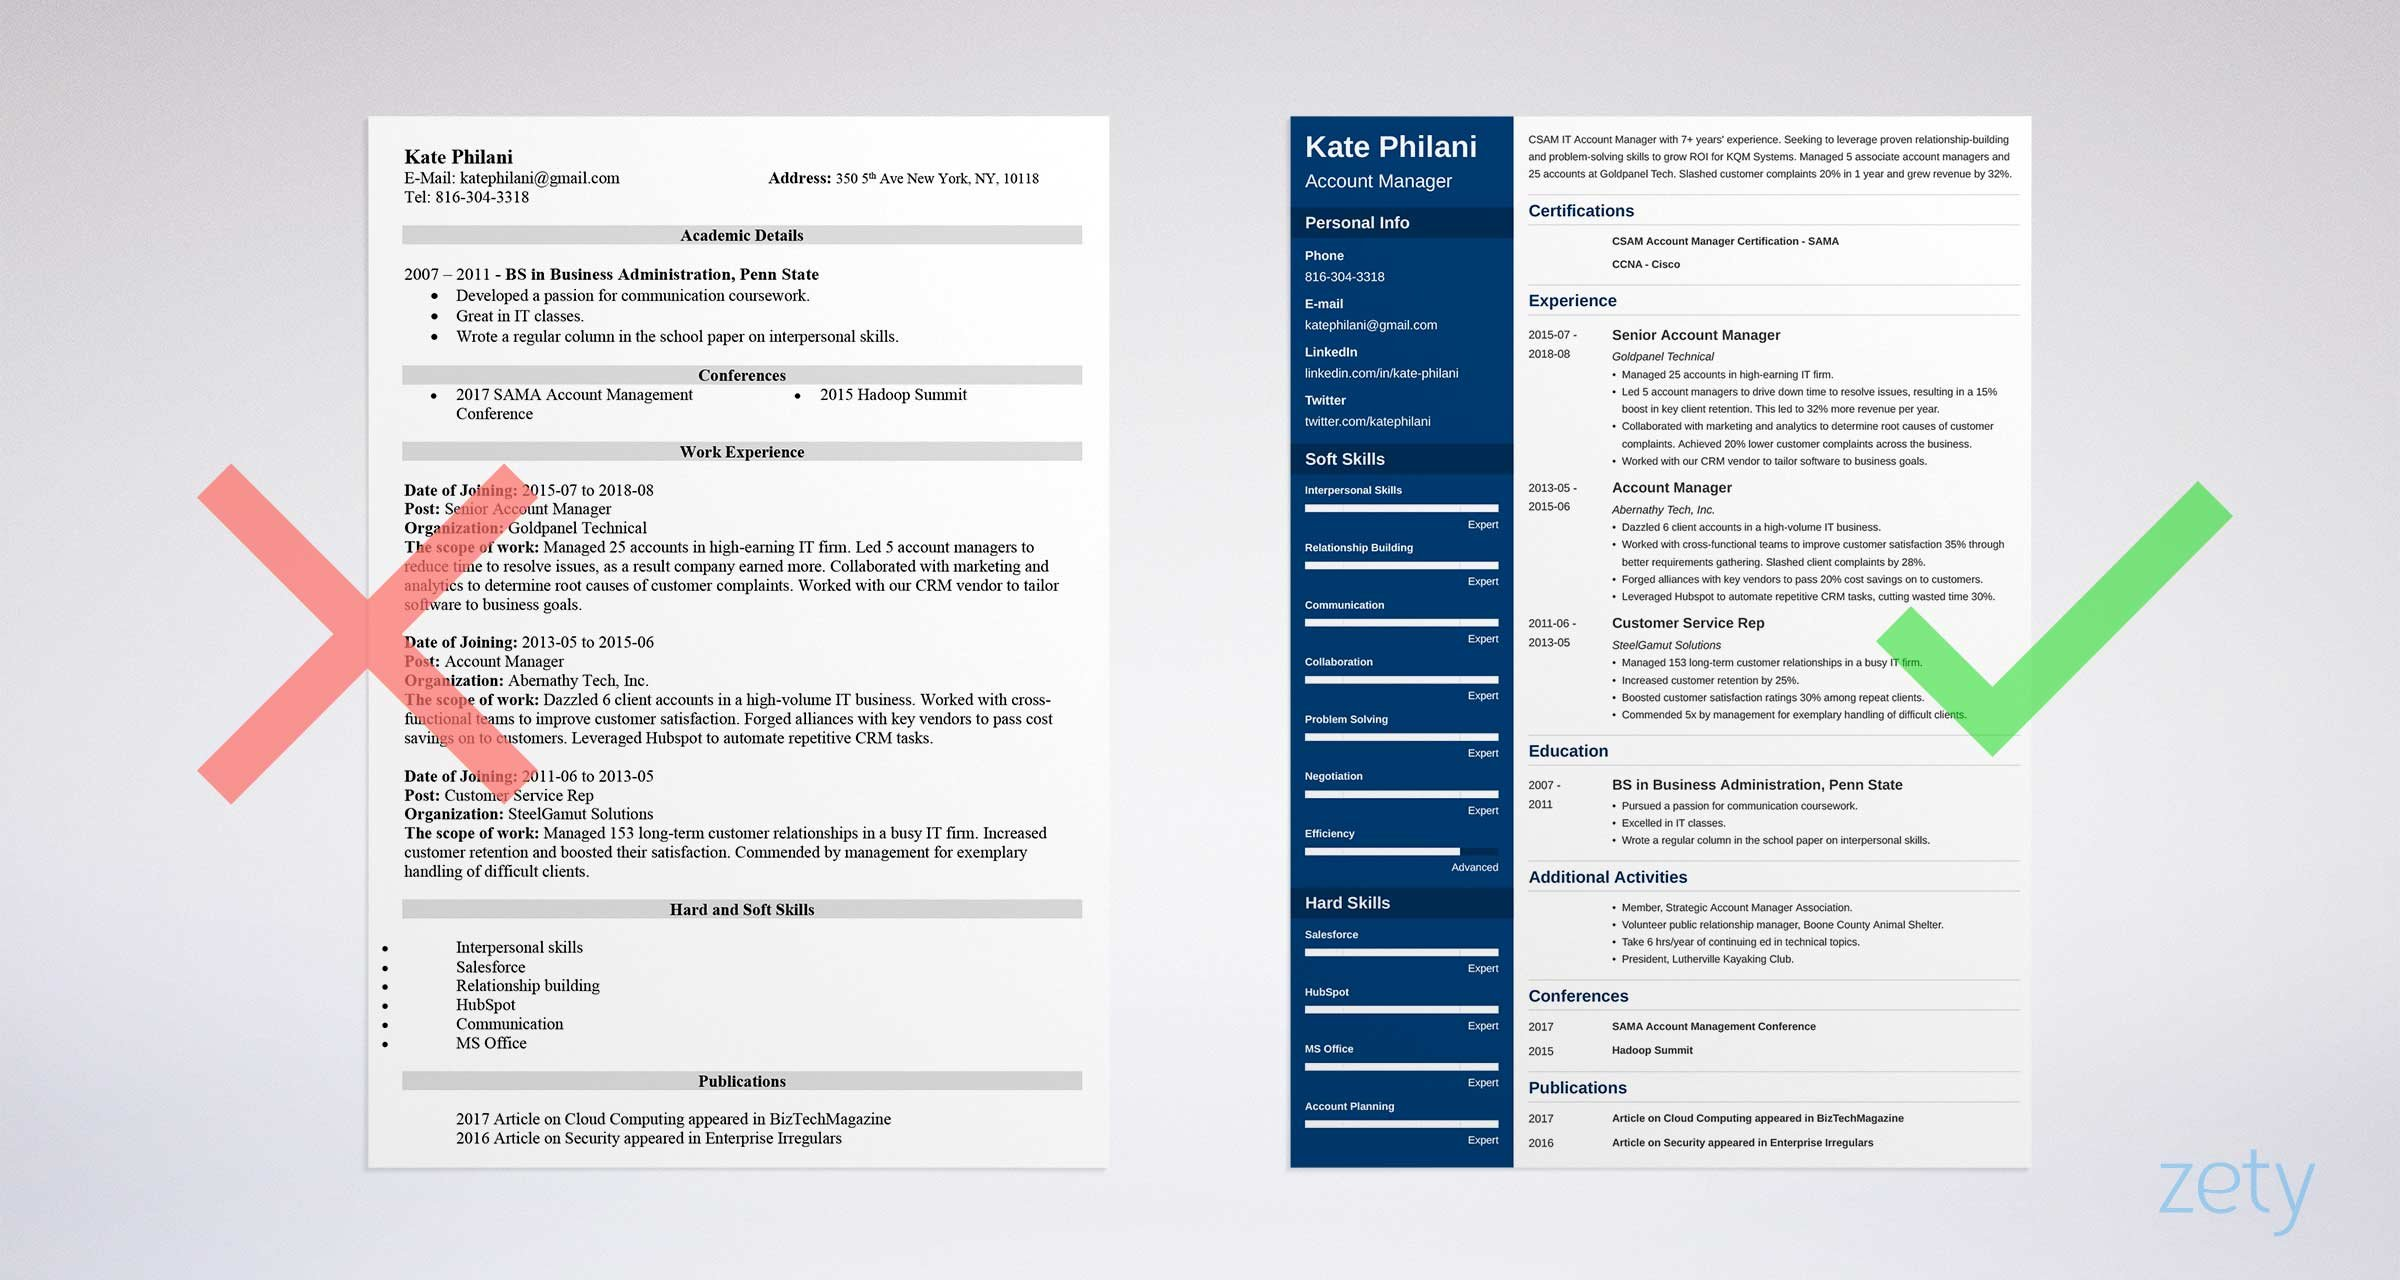 Account Manager Resume: Sample and Writing Guide (20+ Examples)